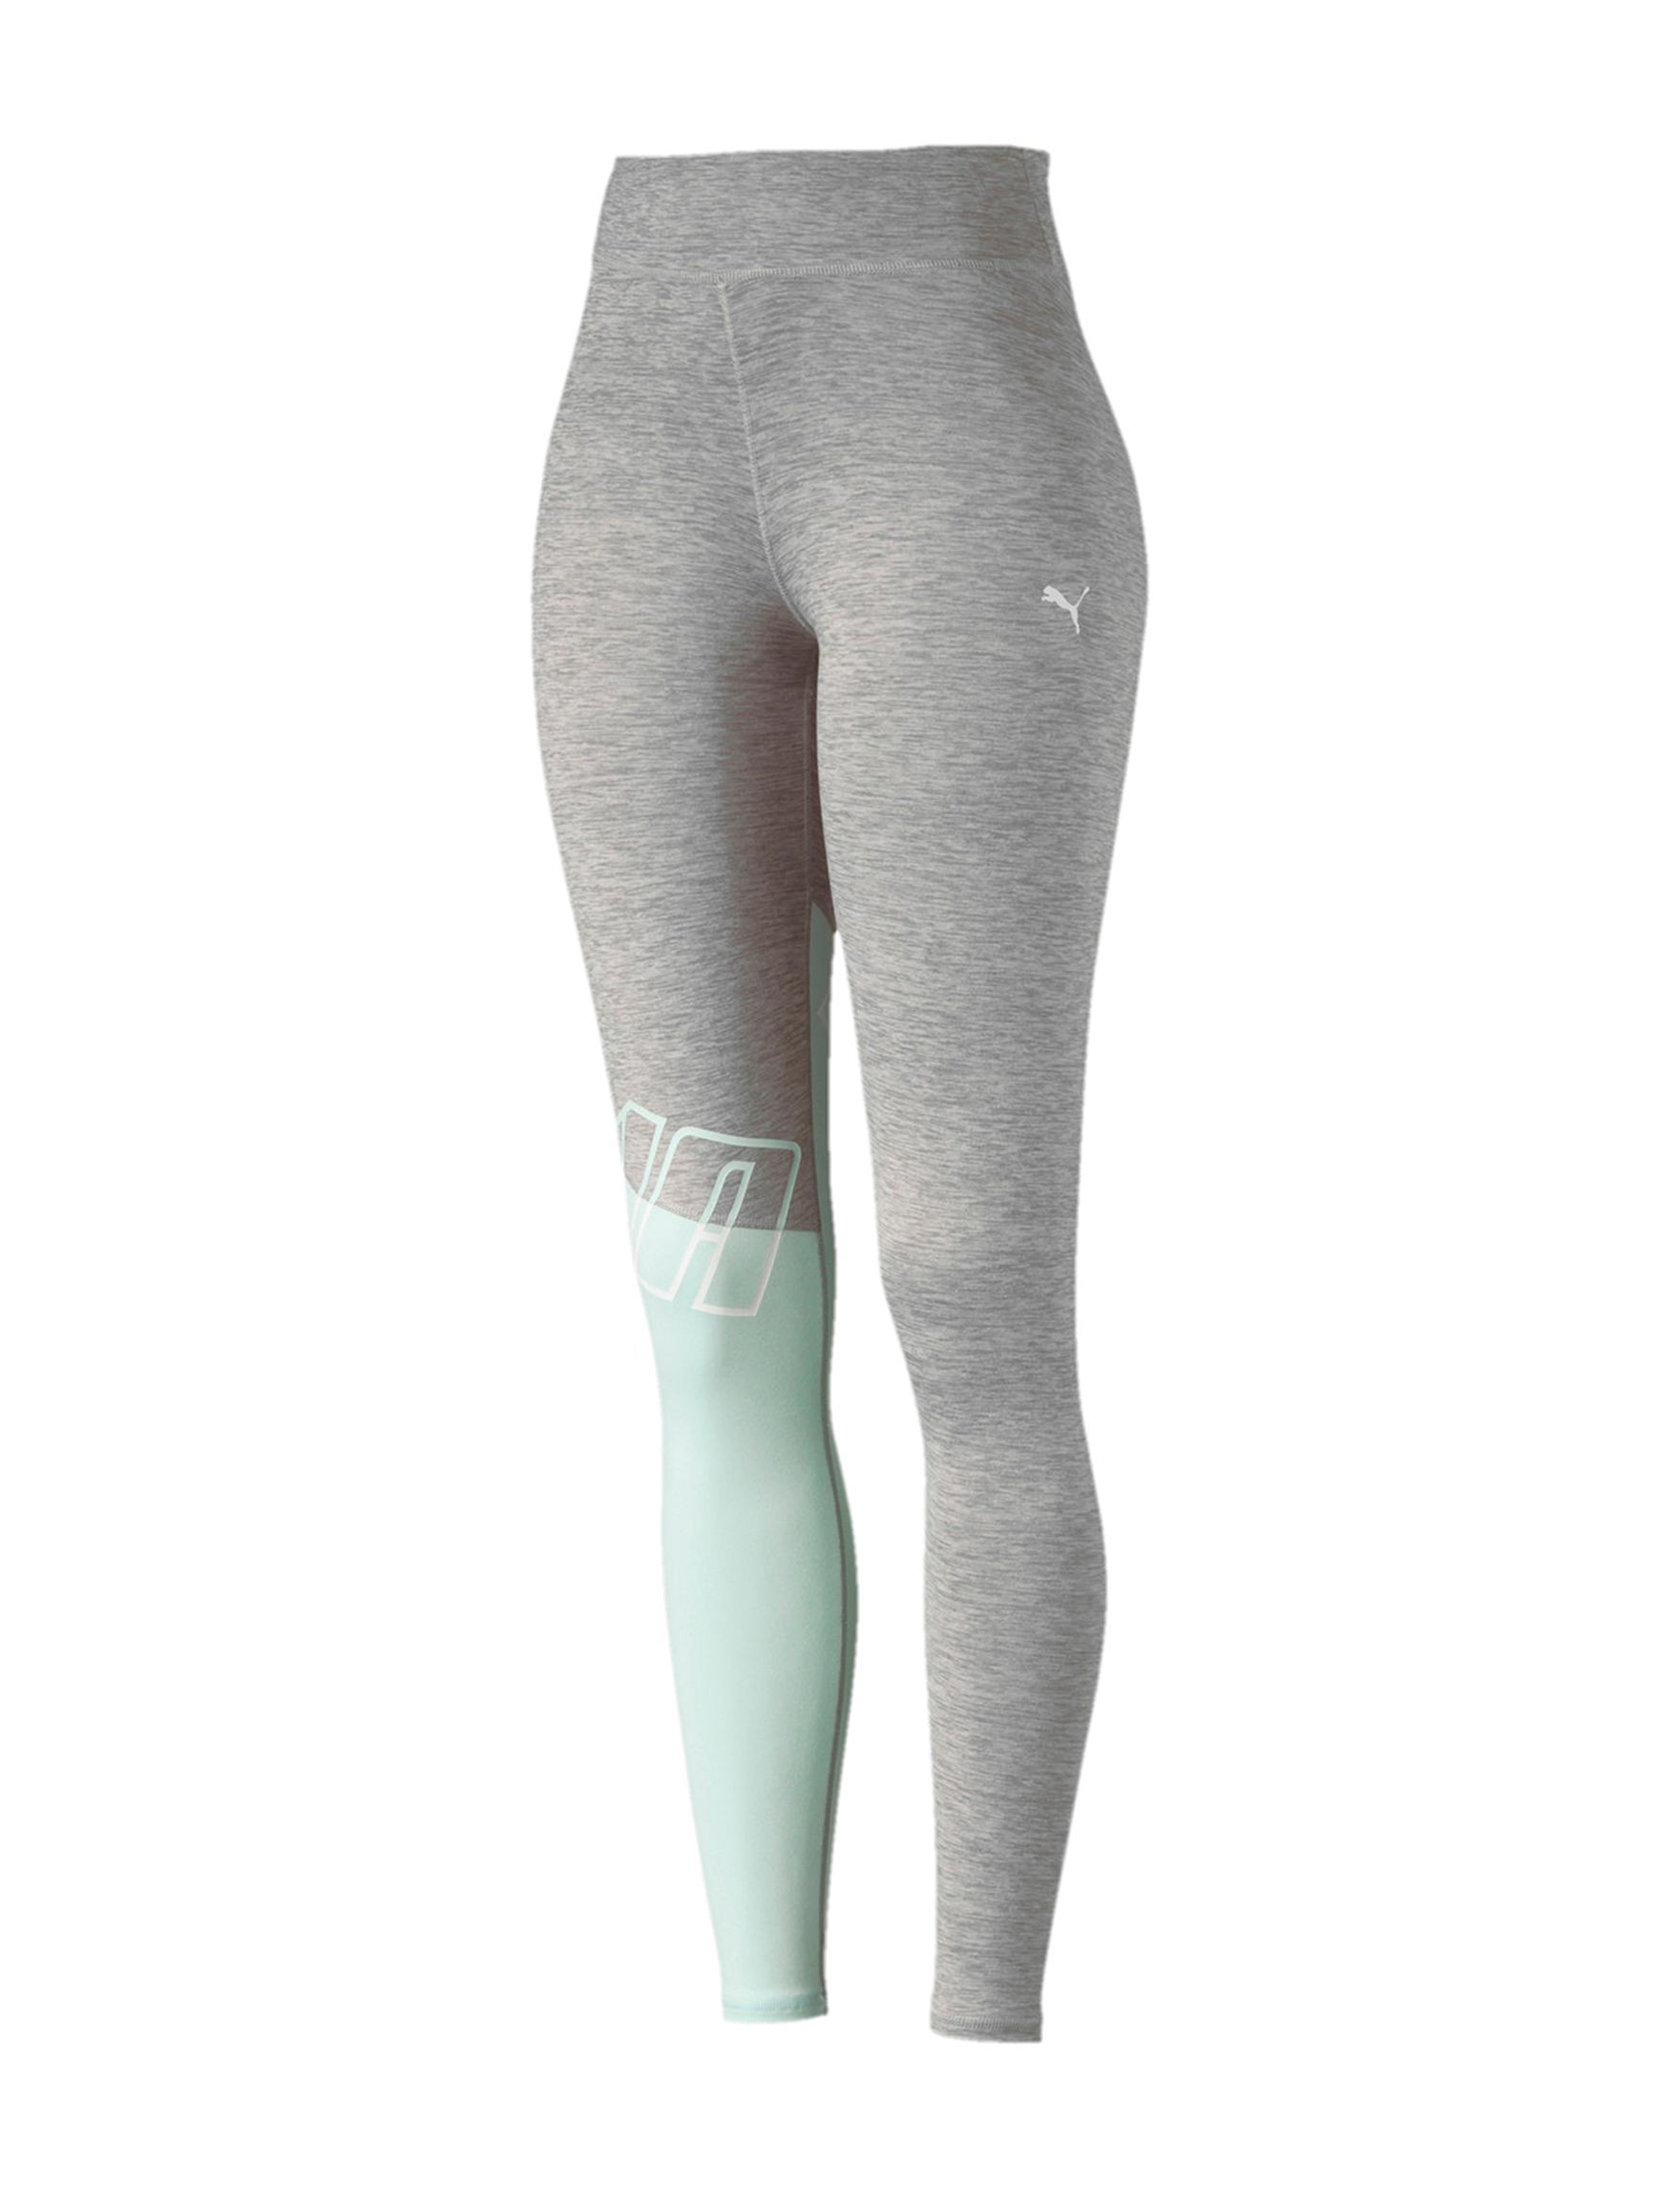 Puma Grey Leggings